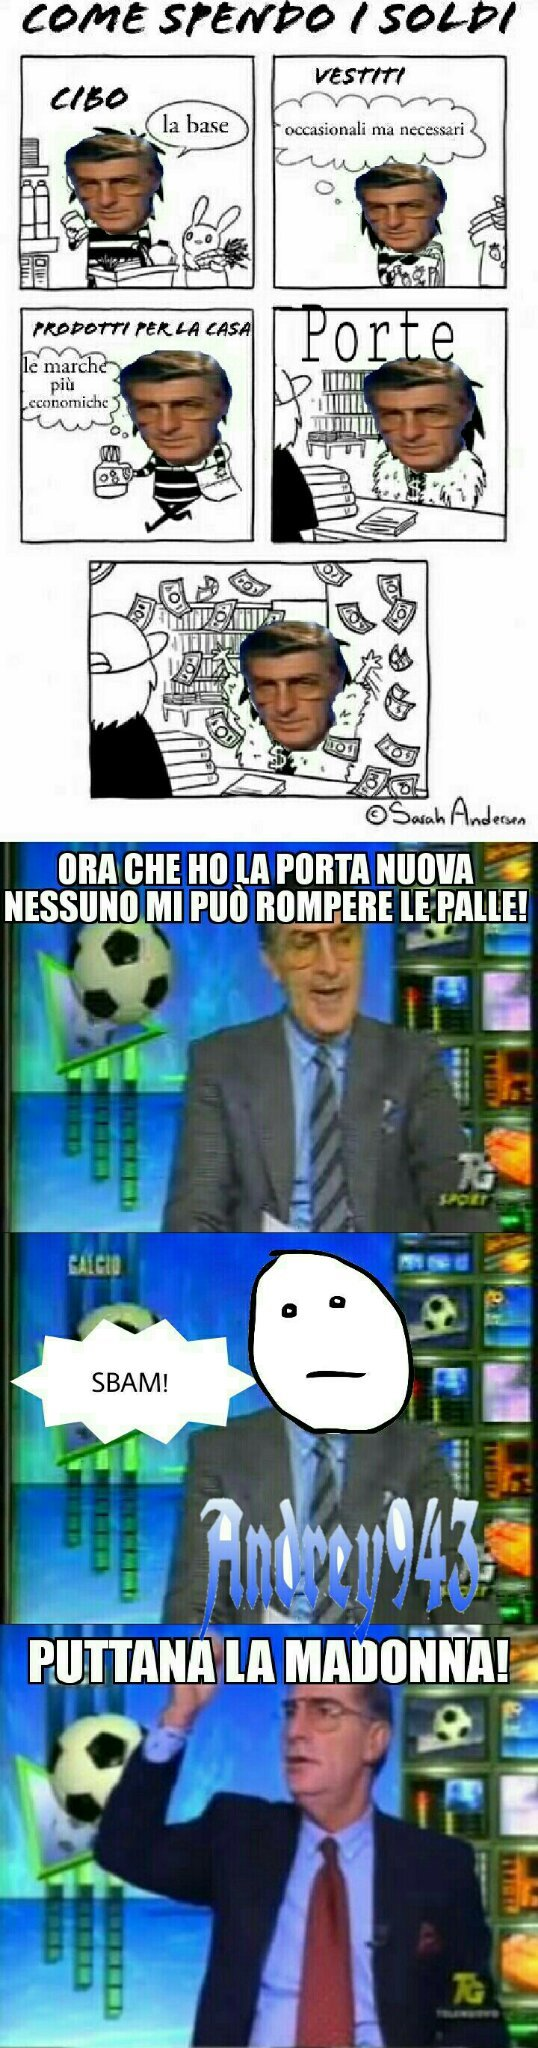 Un altro meme su Germano Mosconi! Cito Dominoc, dogeon, Maty, Gb13, Perez e due peni :isee: